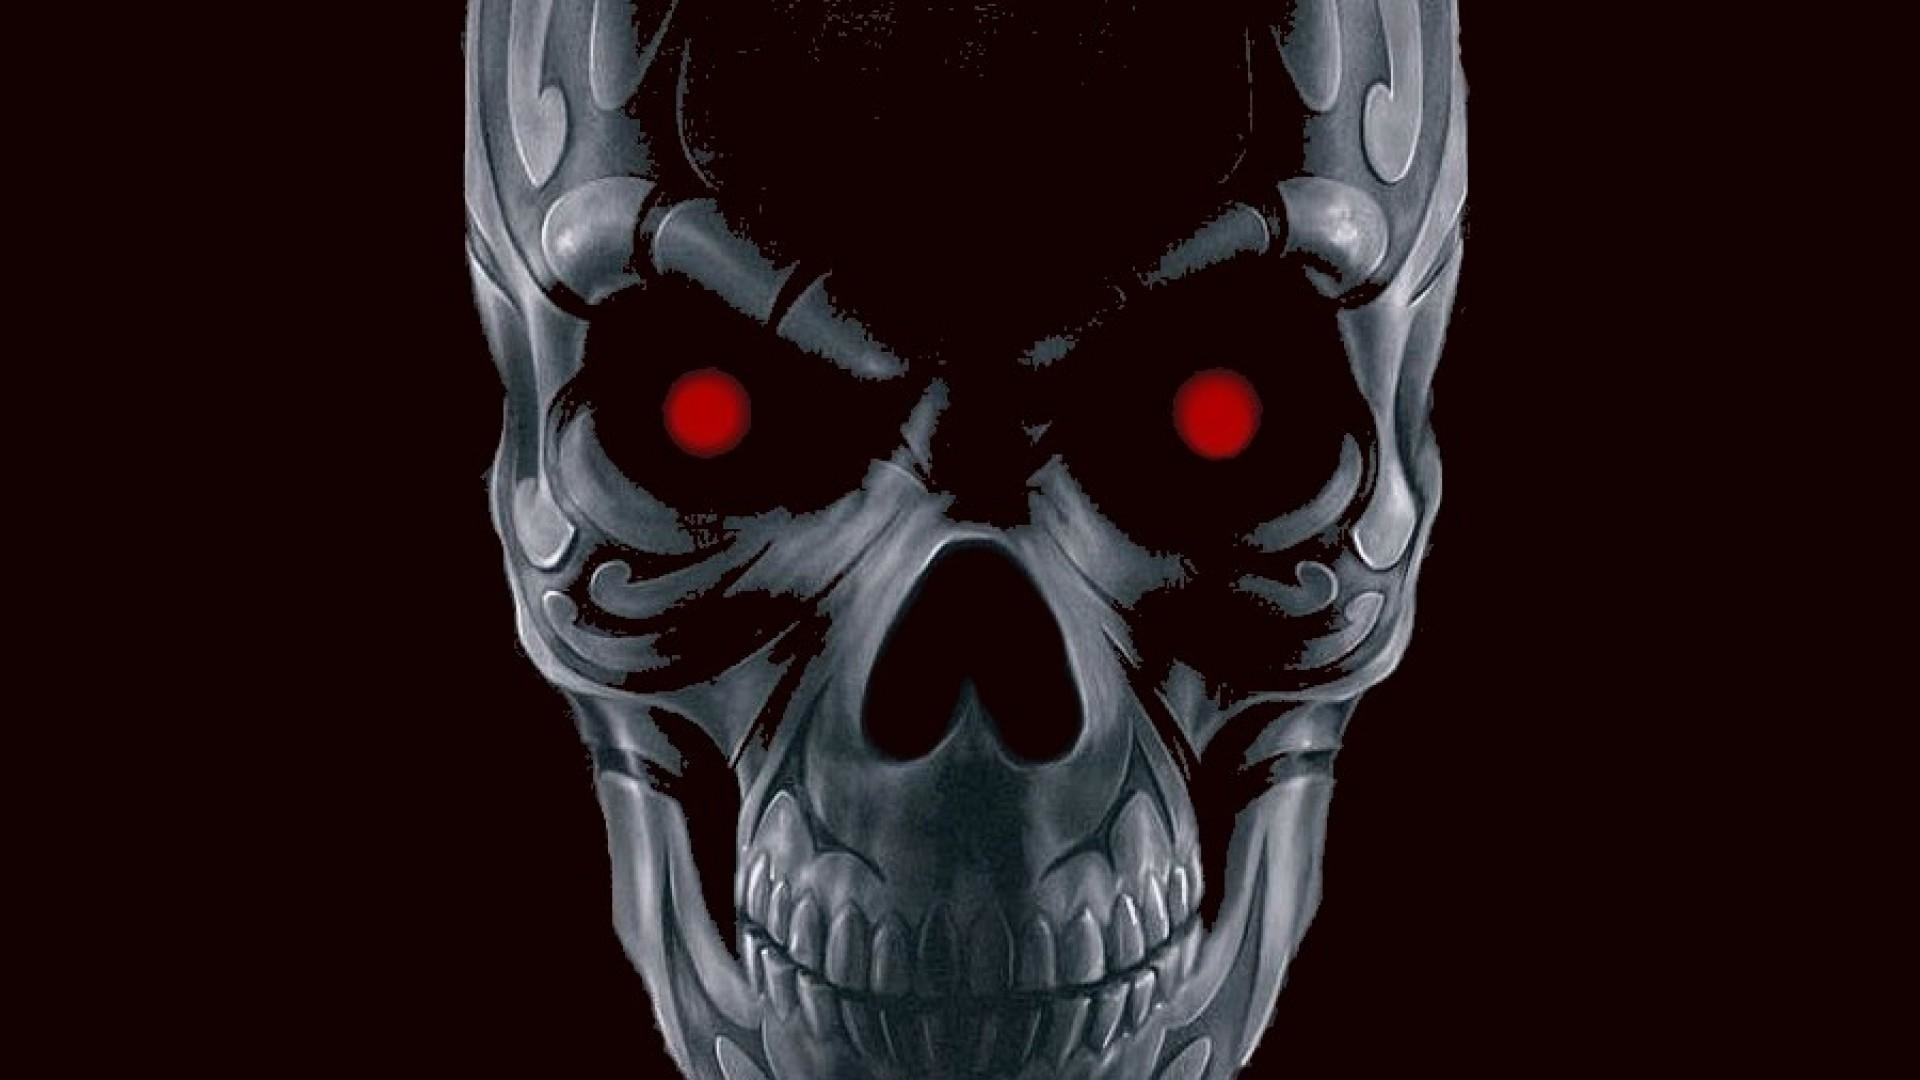 Skull Wallpapers Images 56 Images